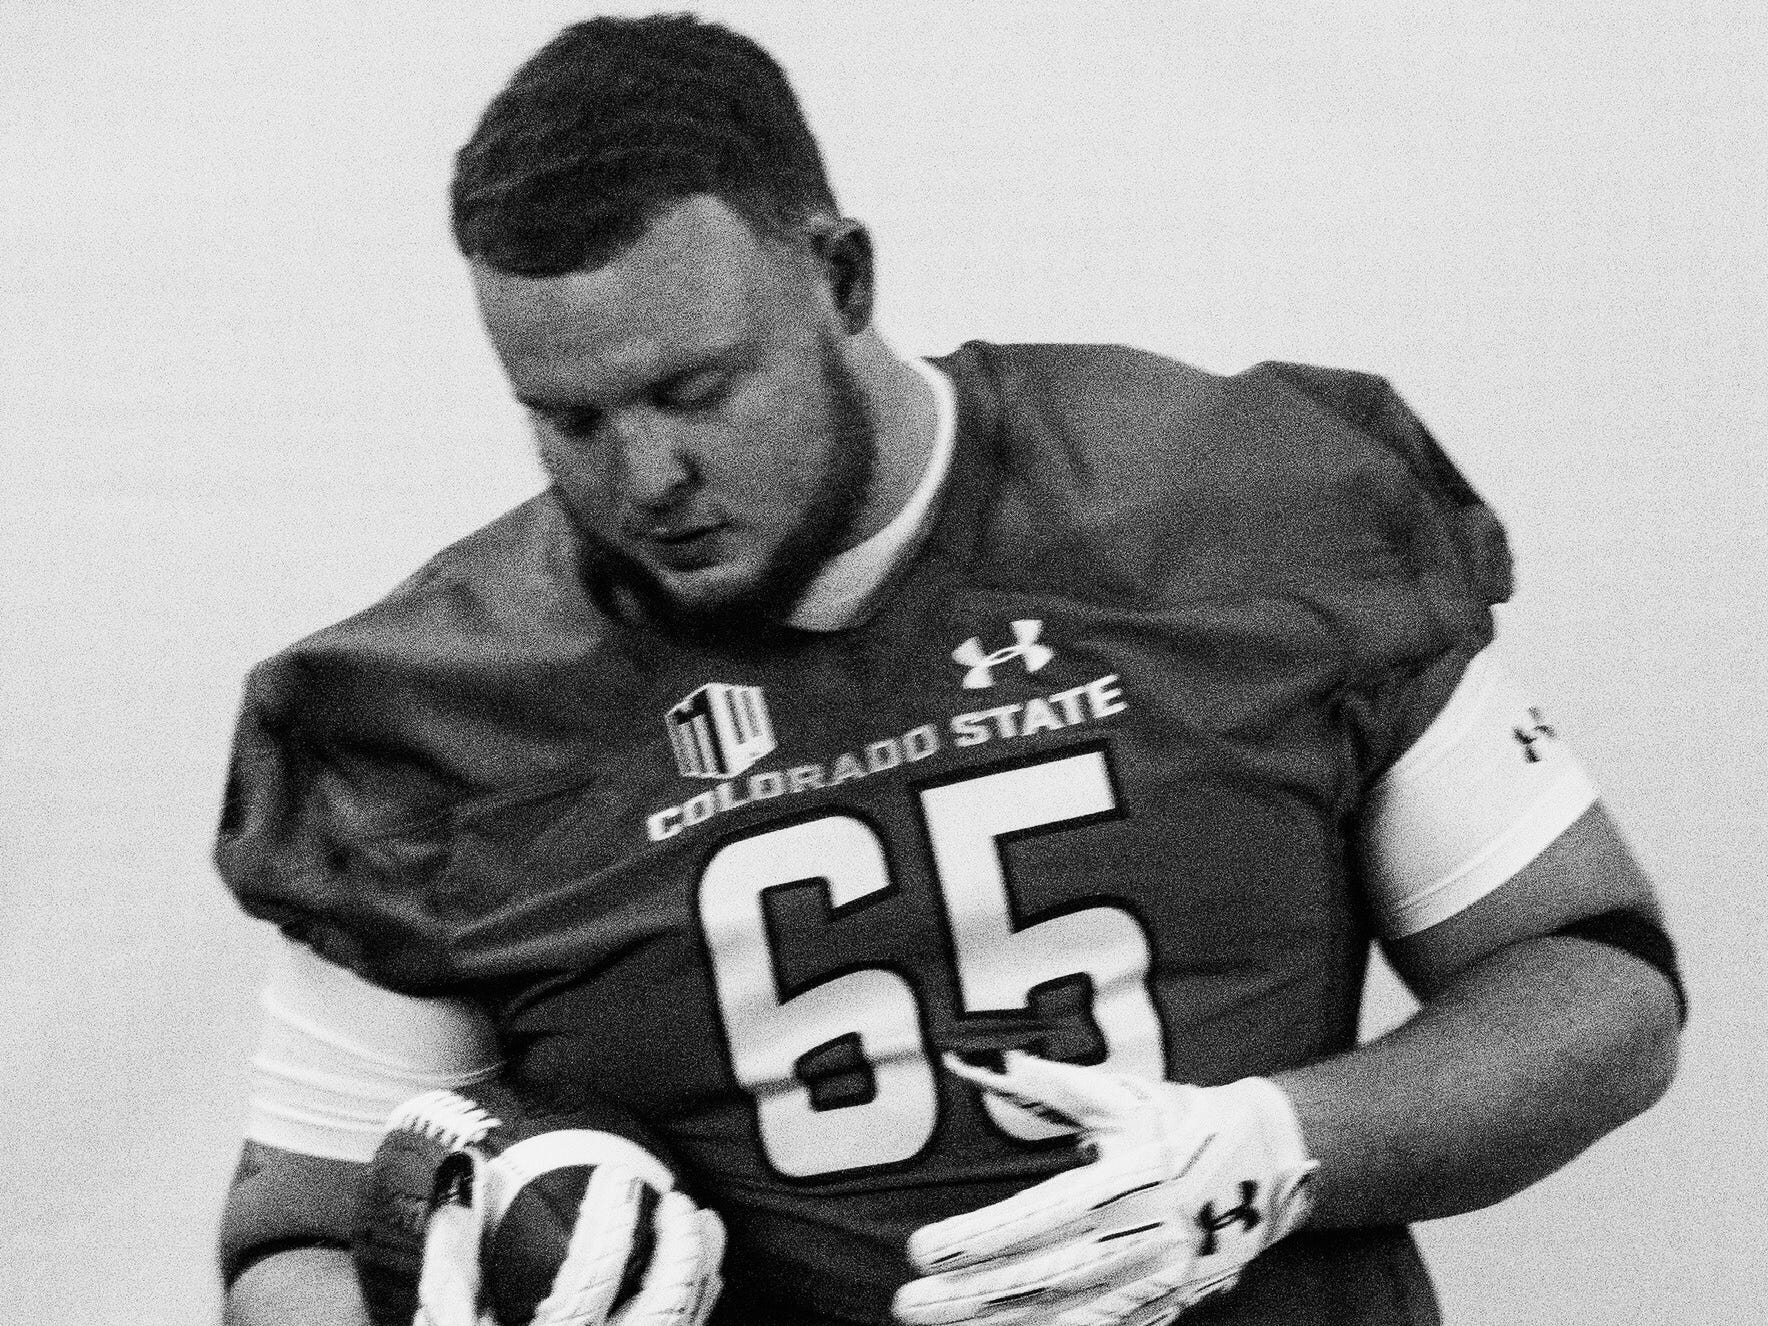 Fort Scott offensive lineman Desmond Noel committed to join the CSU football team in December.